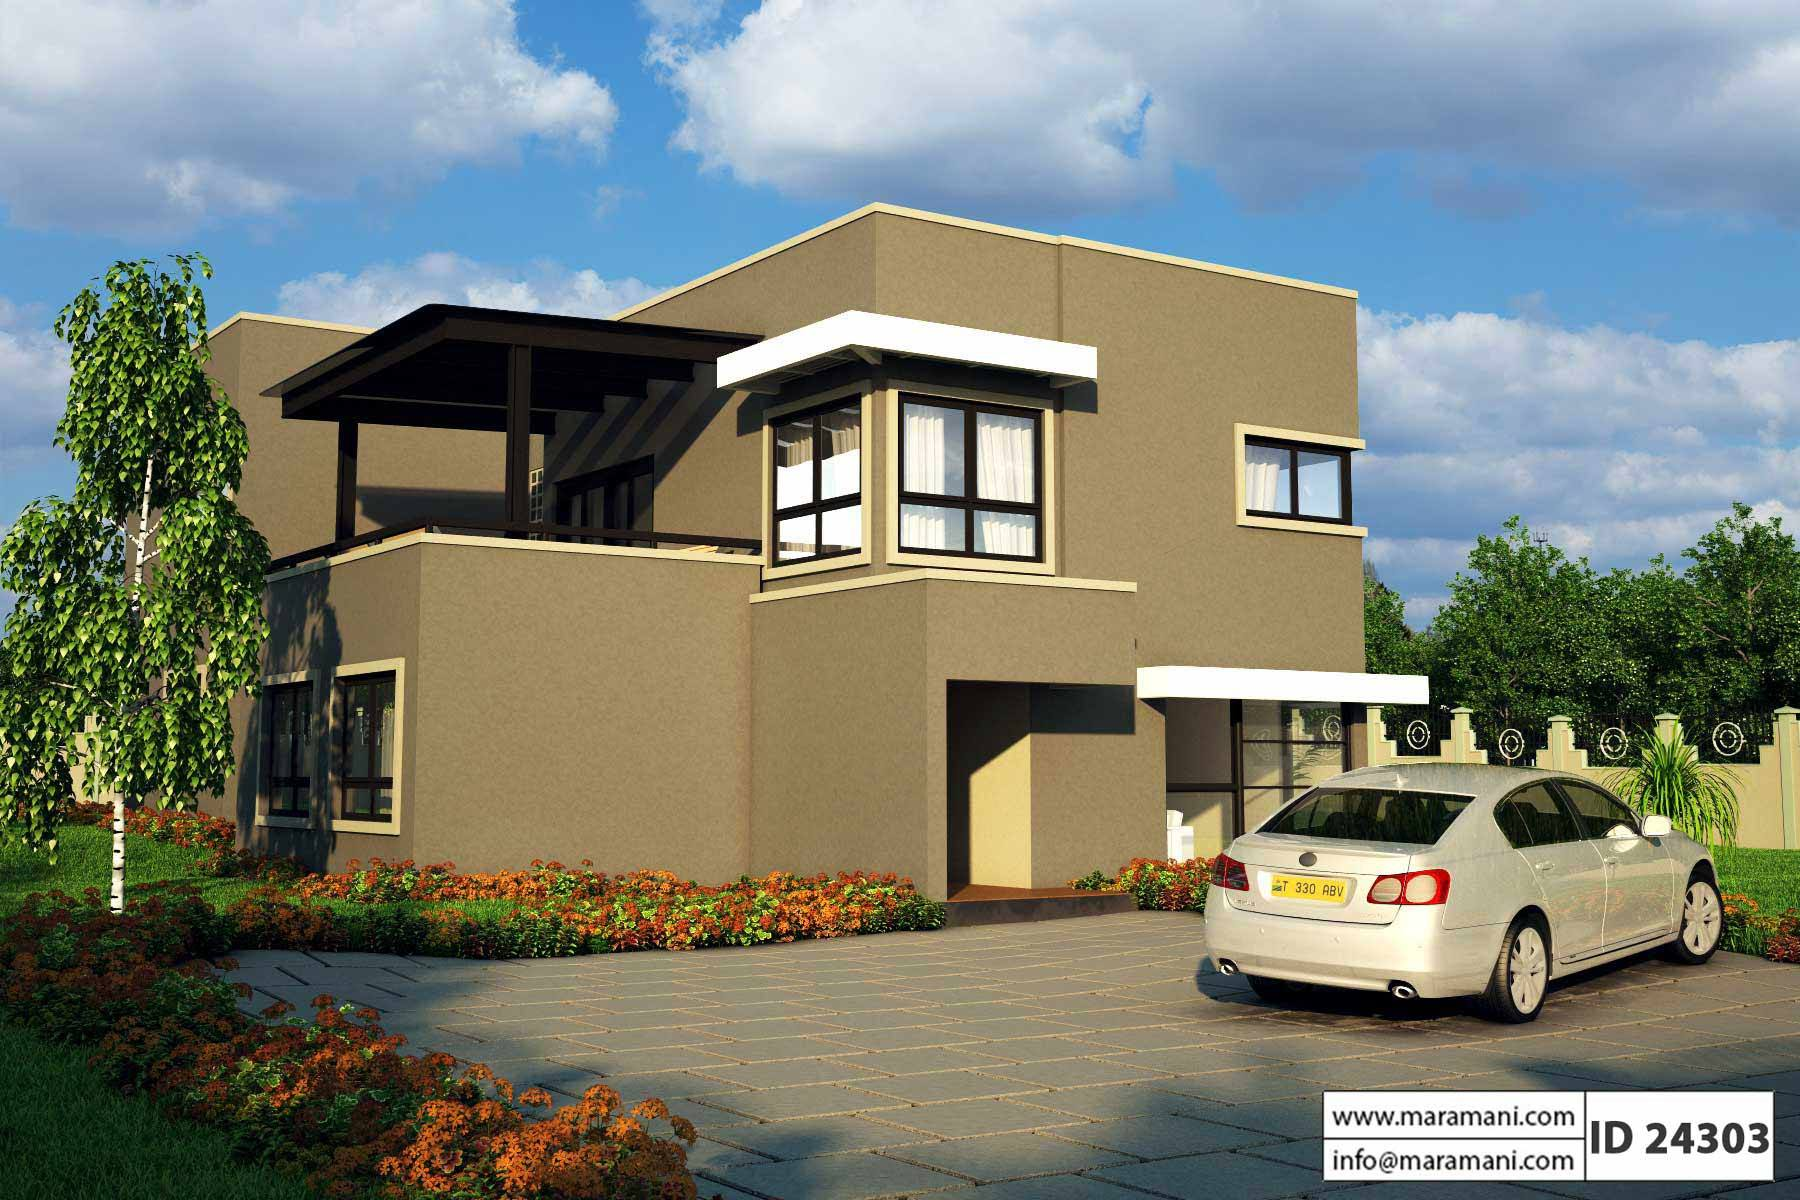 4 bedroom house design id 24303 house plans by maramani for Cheap i bedroom house